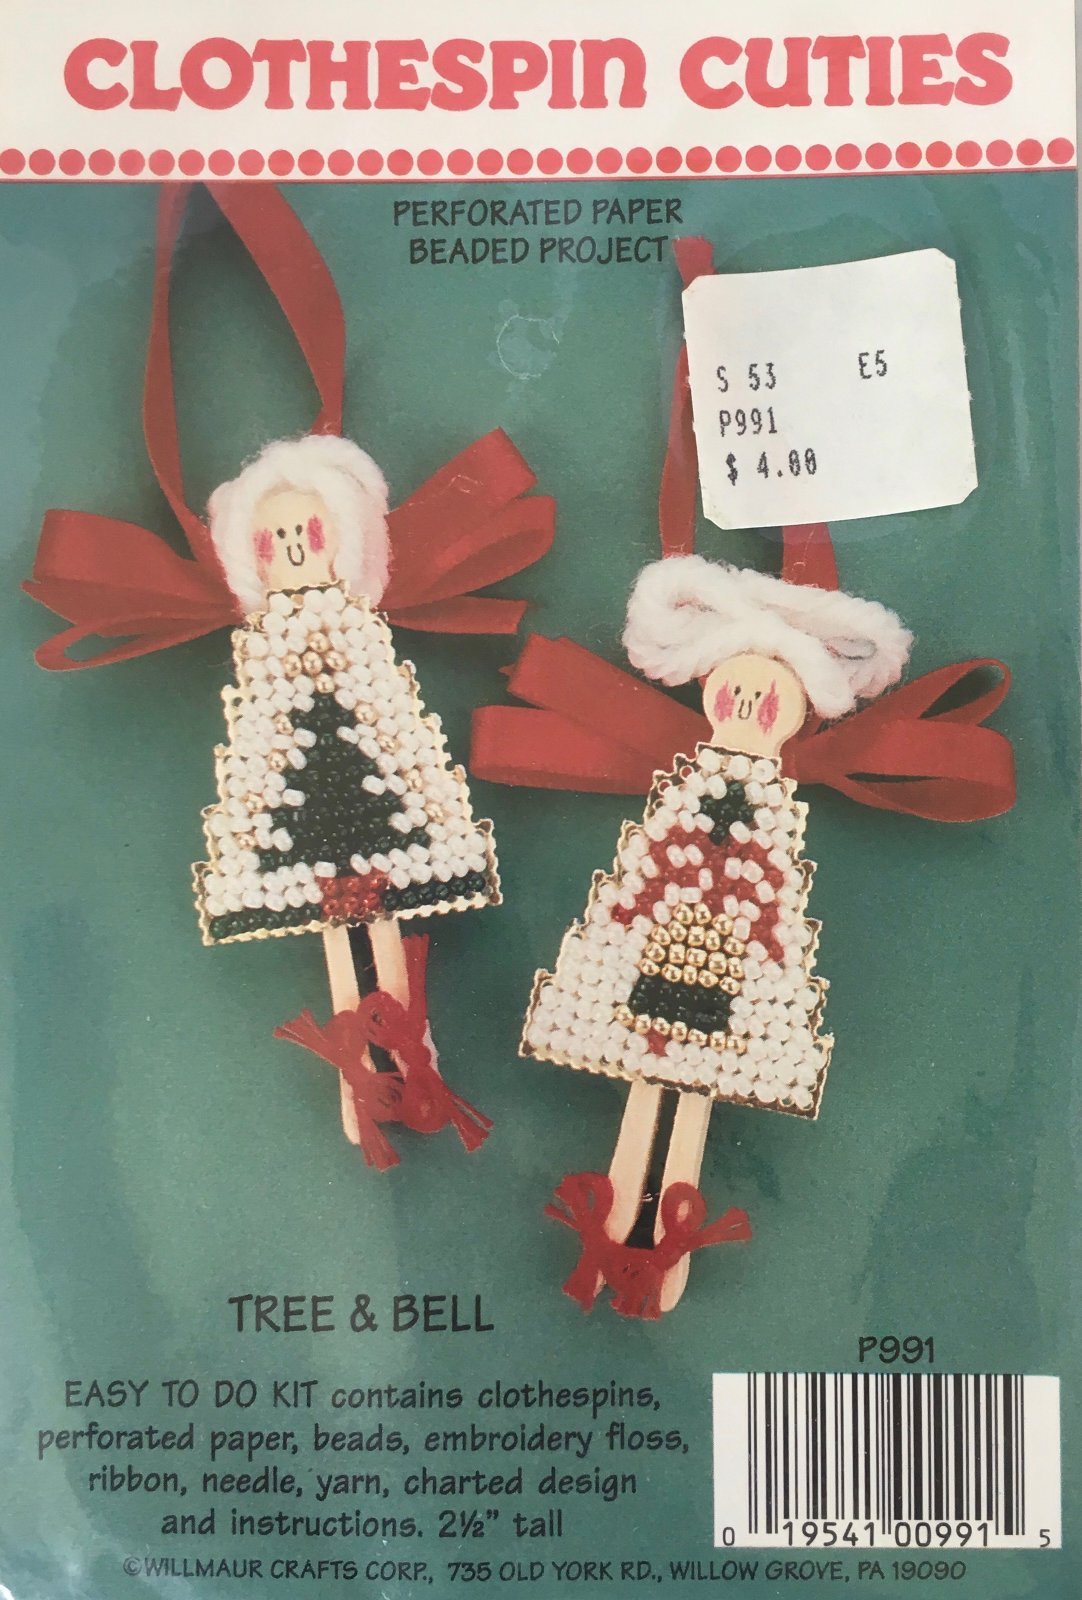 Astor Place: Clothespin Cuties Tree & Bell Kit P991